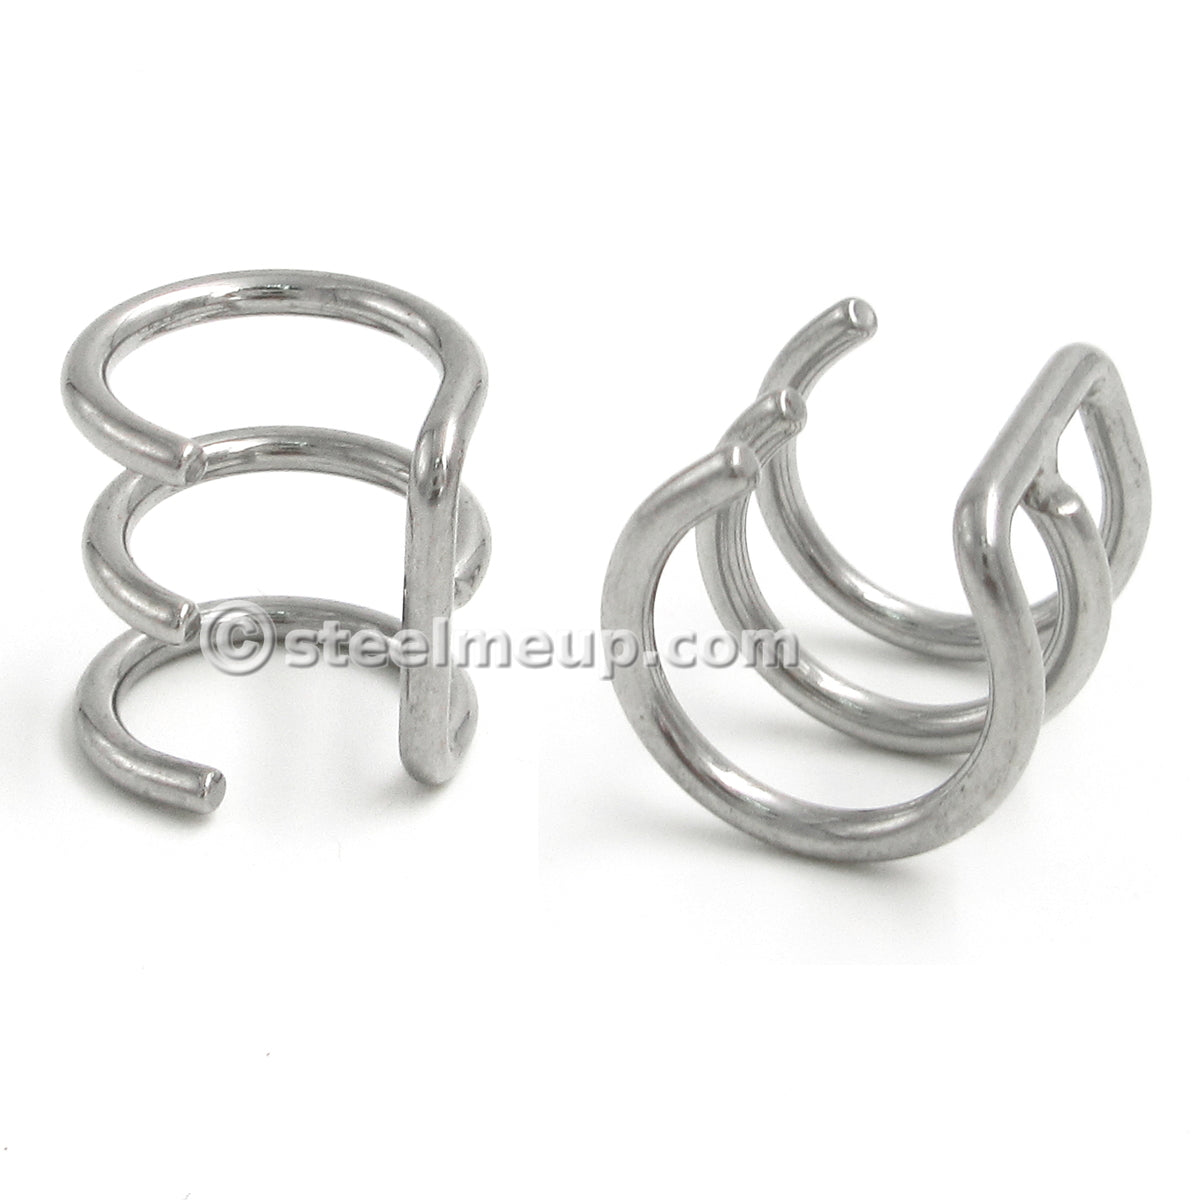 Pair Stainless Steel 3-Hoop Non Piercing Ear Cuff Conch Earrings